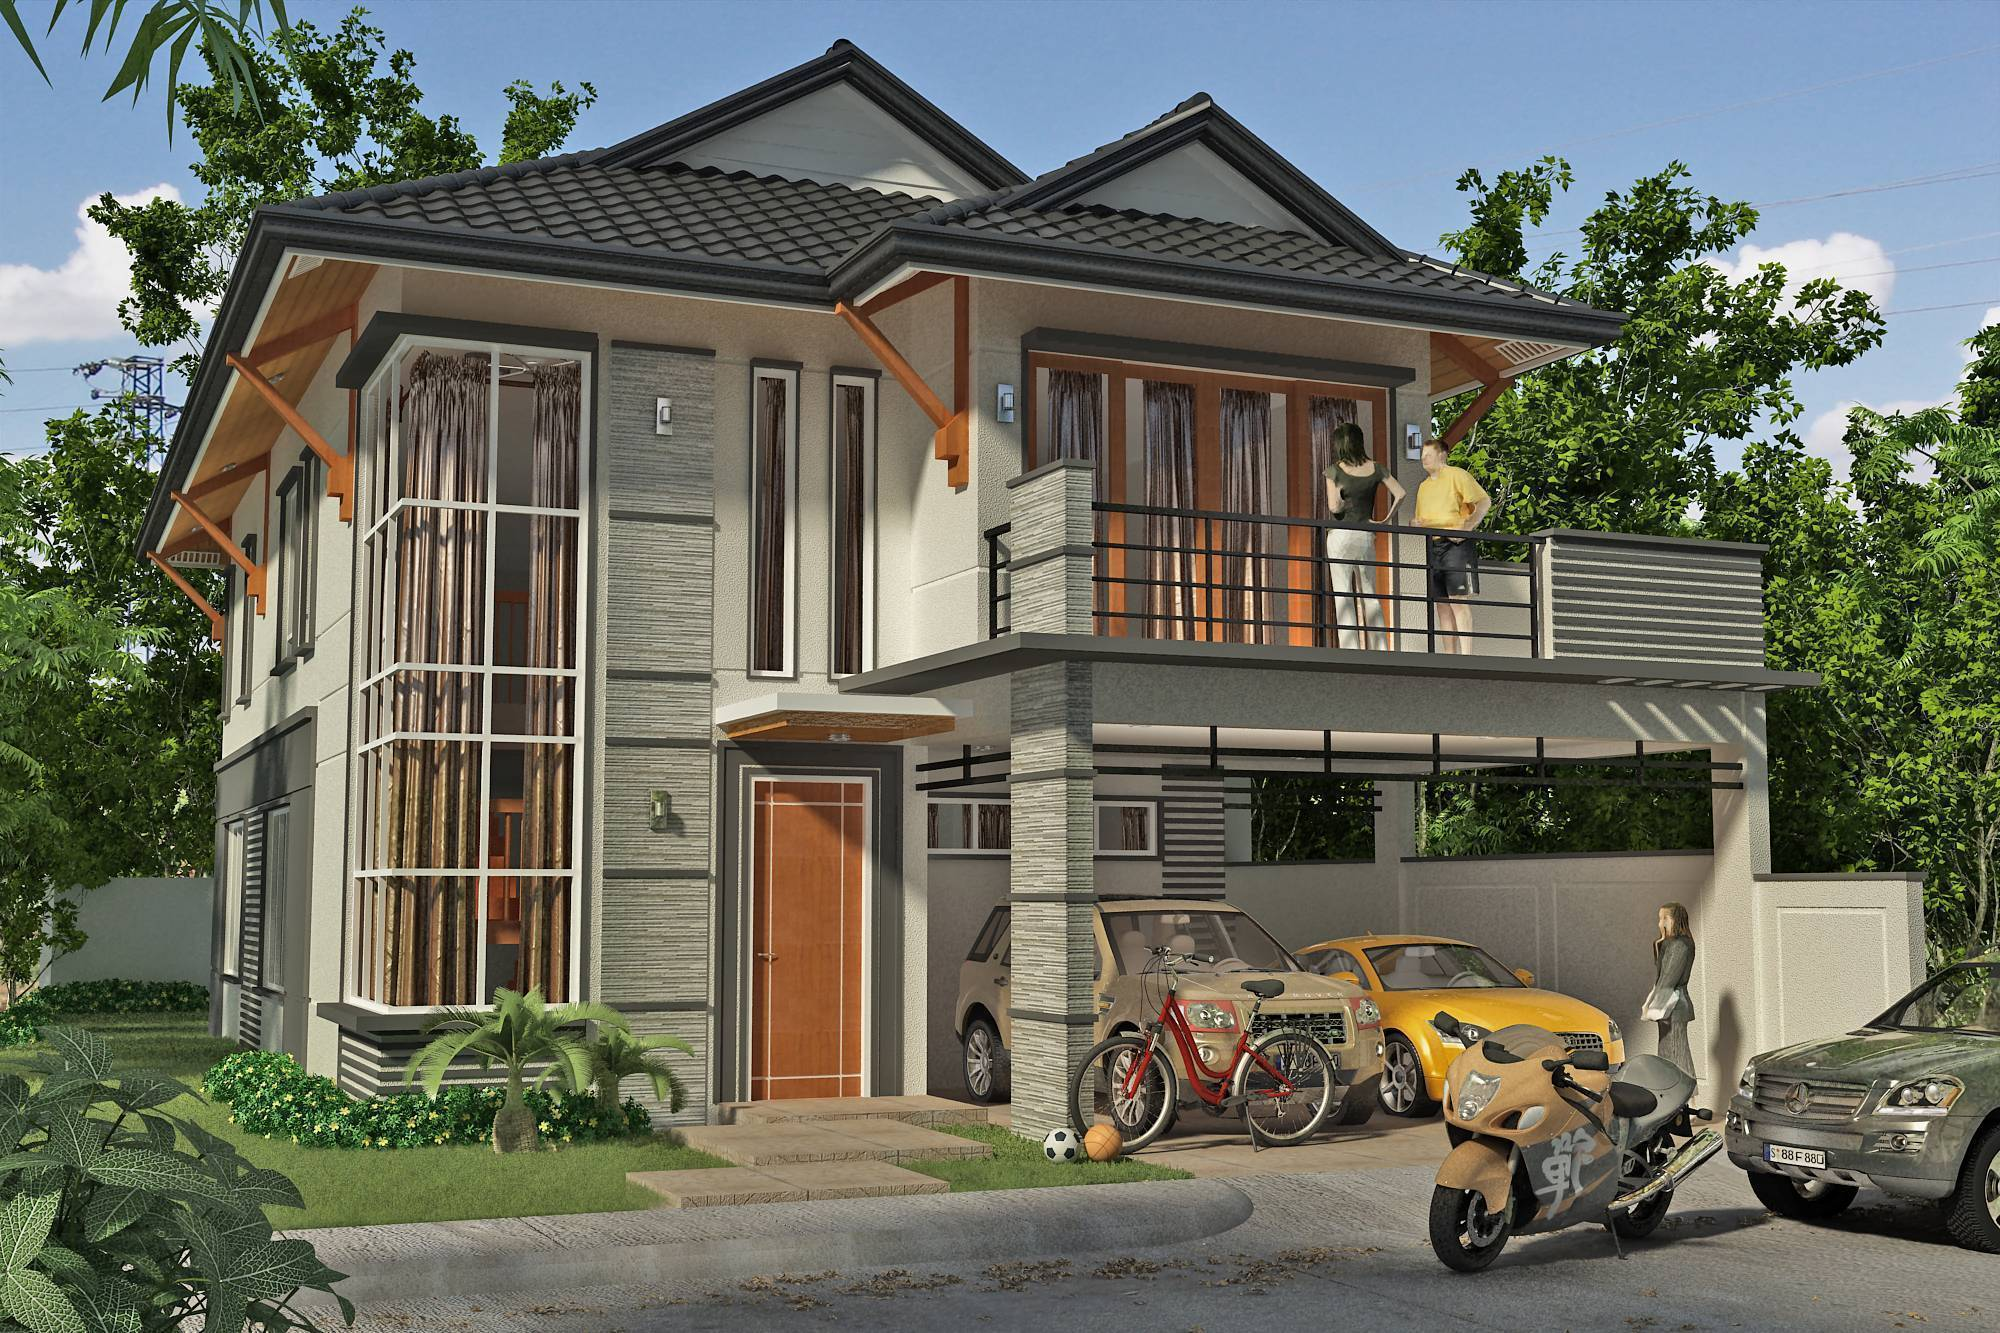 House for sale quezon city manila philippines quezon for Modern house quezon city